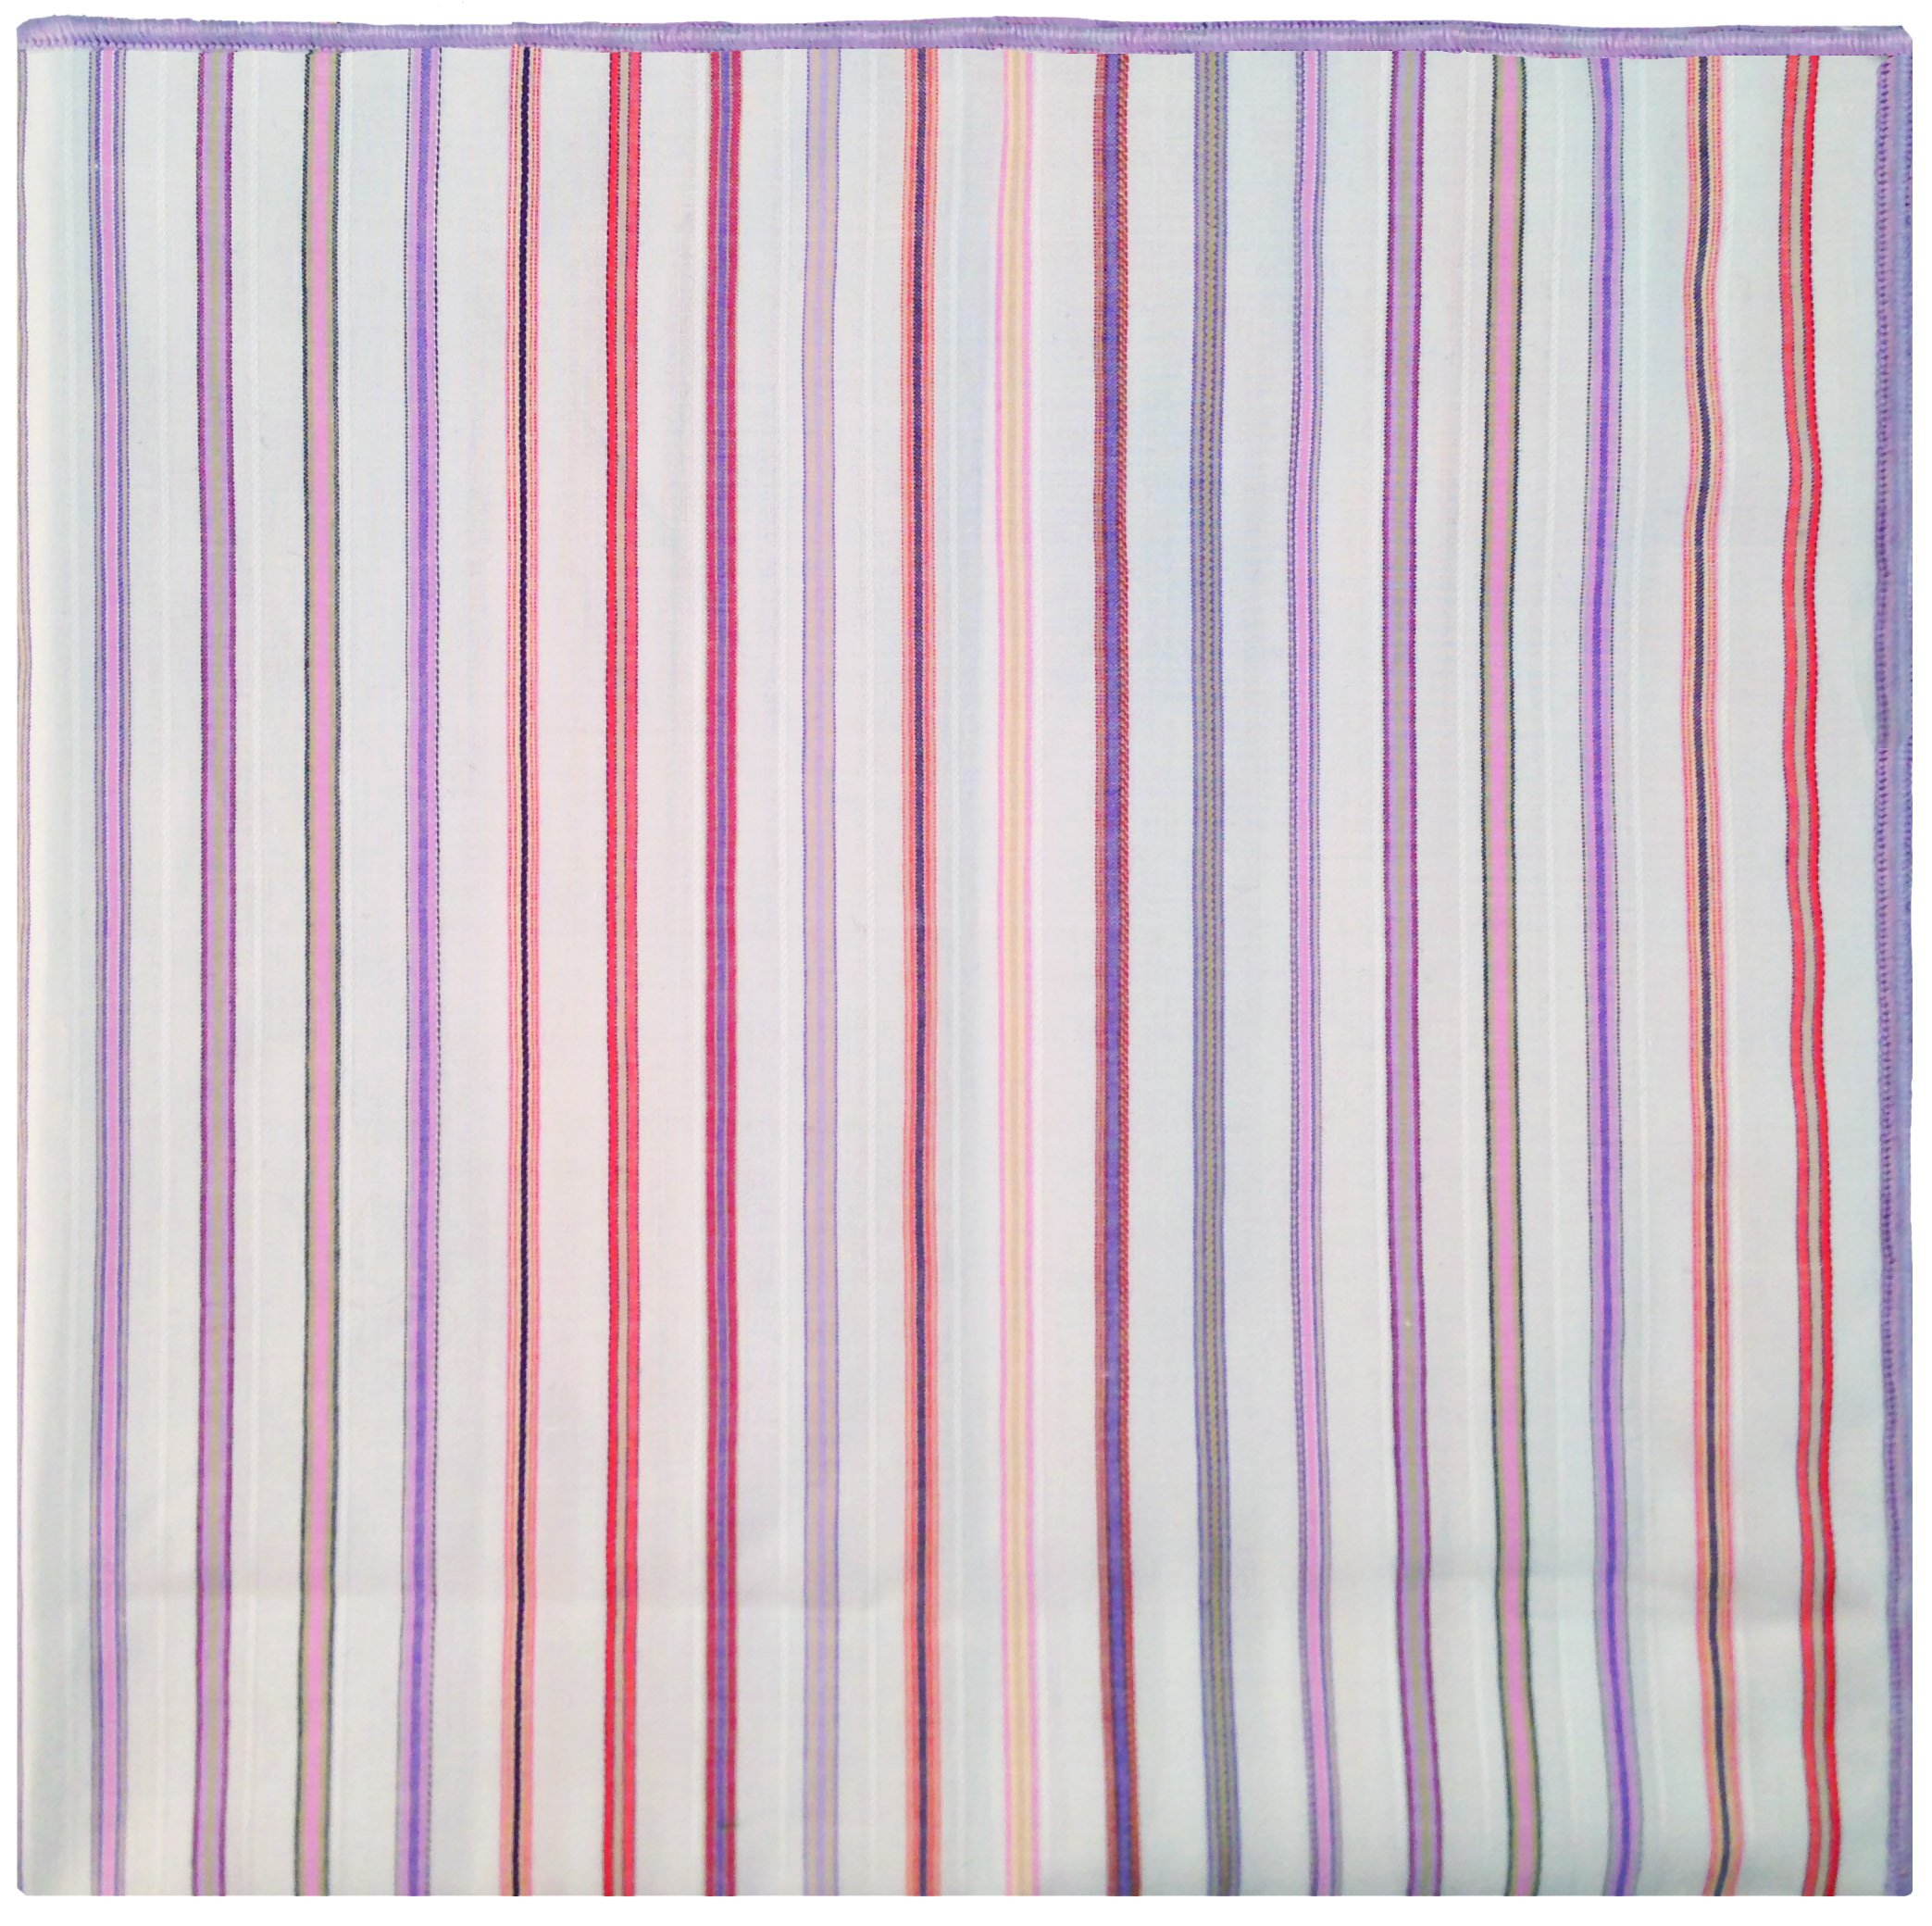 White & Multi Stripe w/Gingham Button Men's Pocket Square by The Detailed Male by The Detailed Male (Image #4)